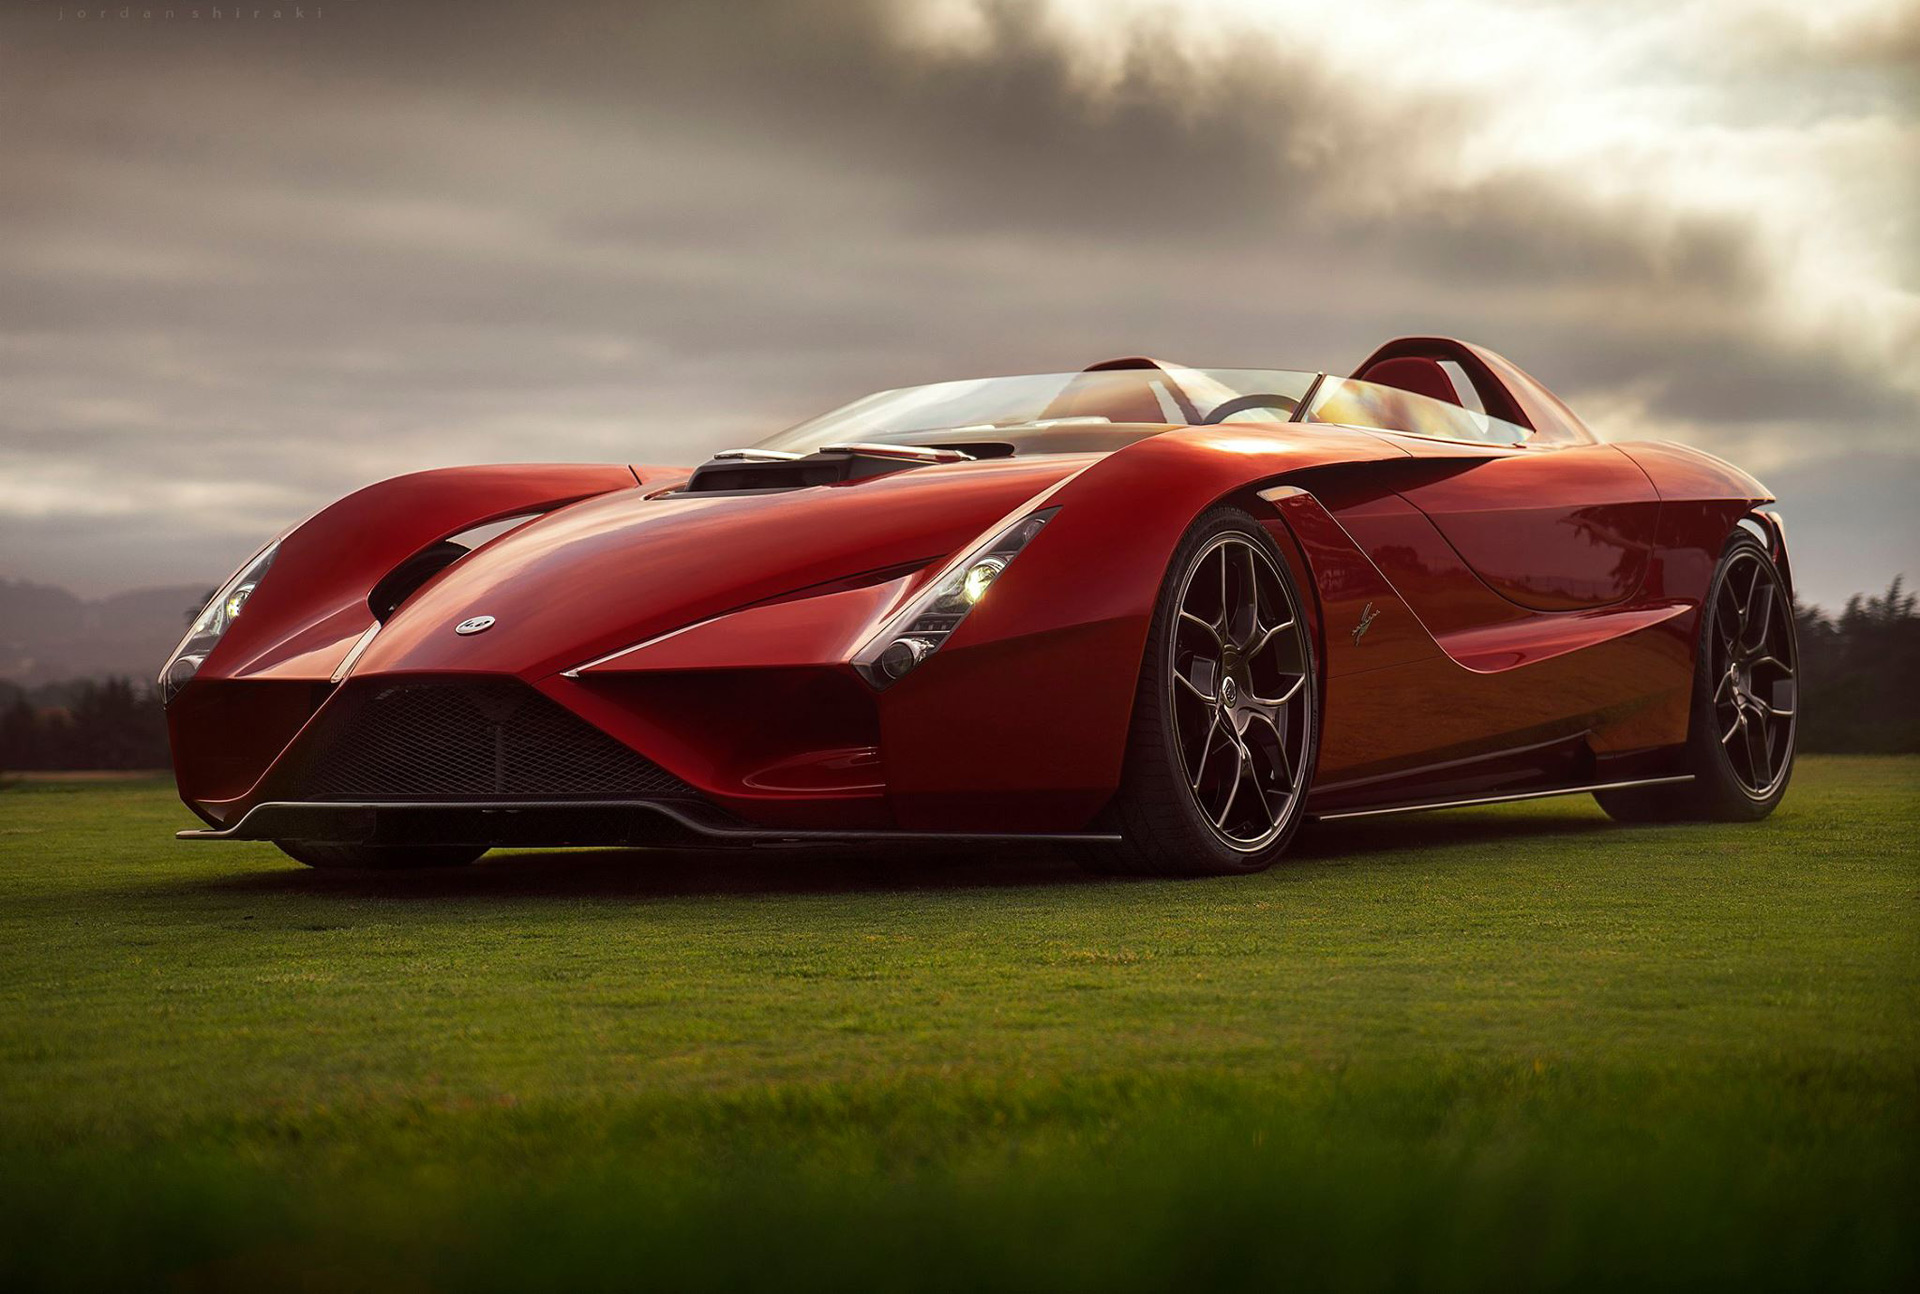 Ken Okuyama Kode57 Priced From 2 5 Million Limited To 5 Cars